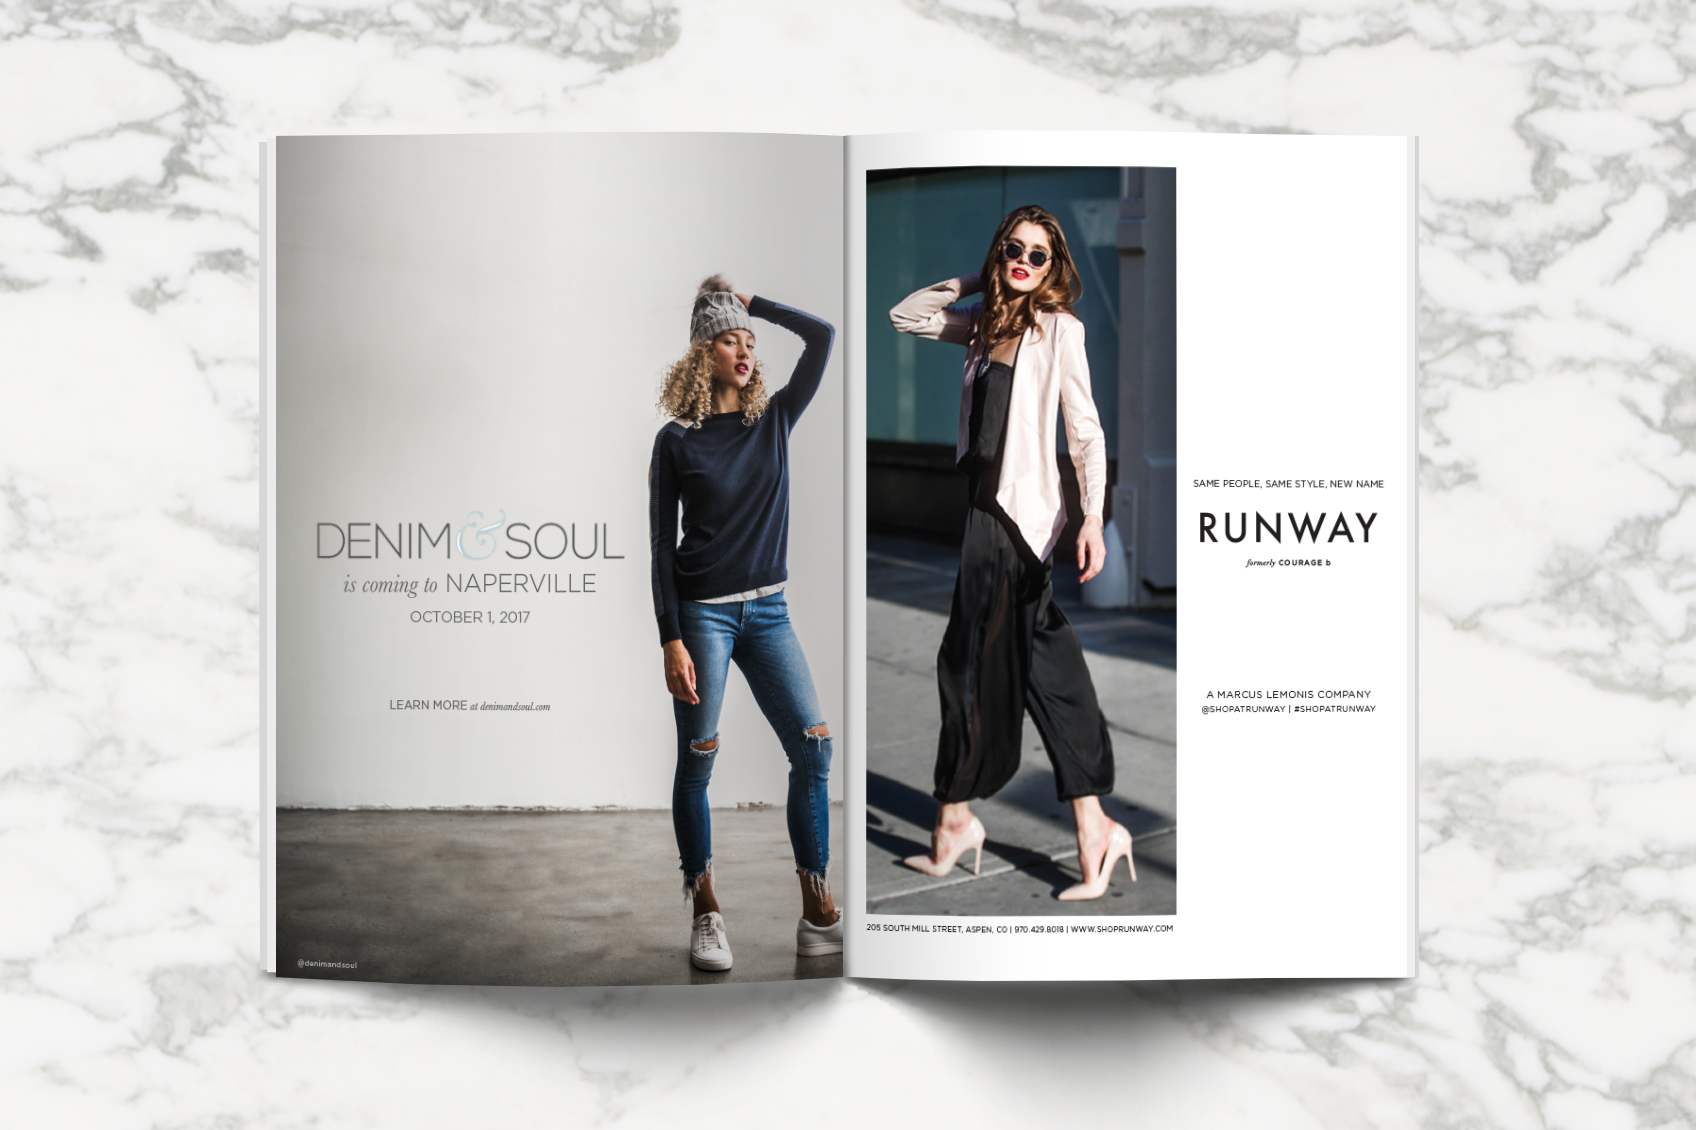 ds-runway-ad.png